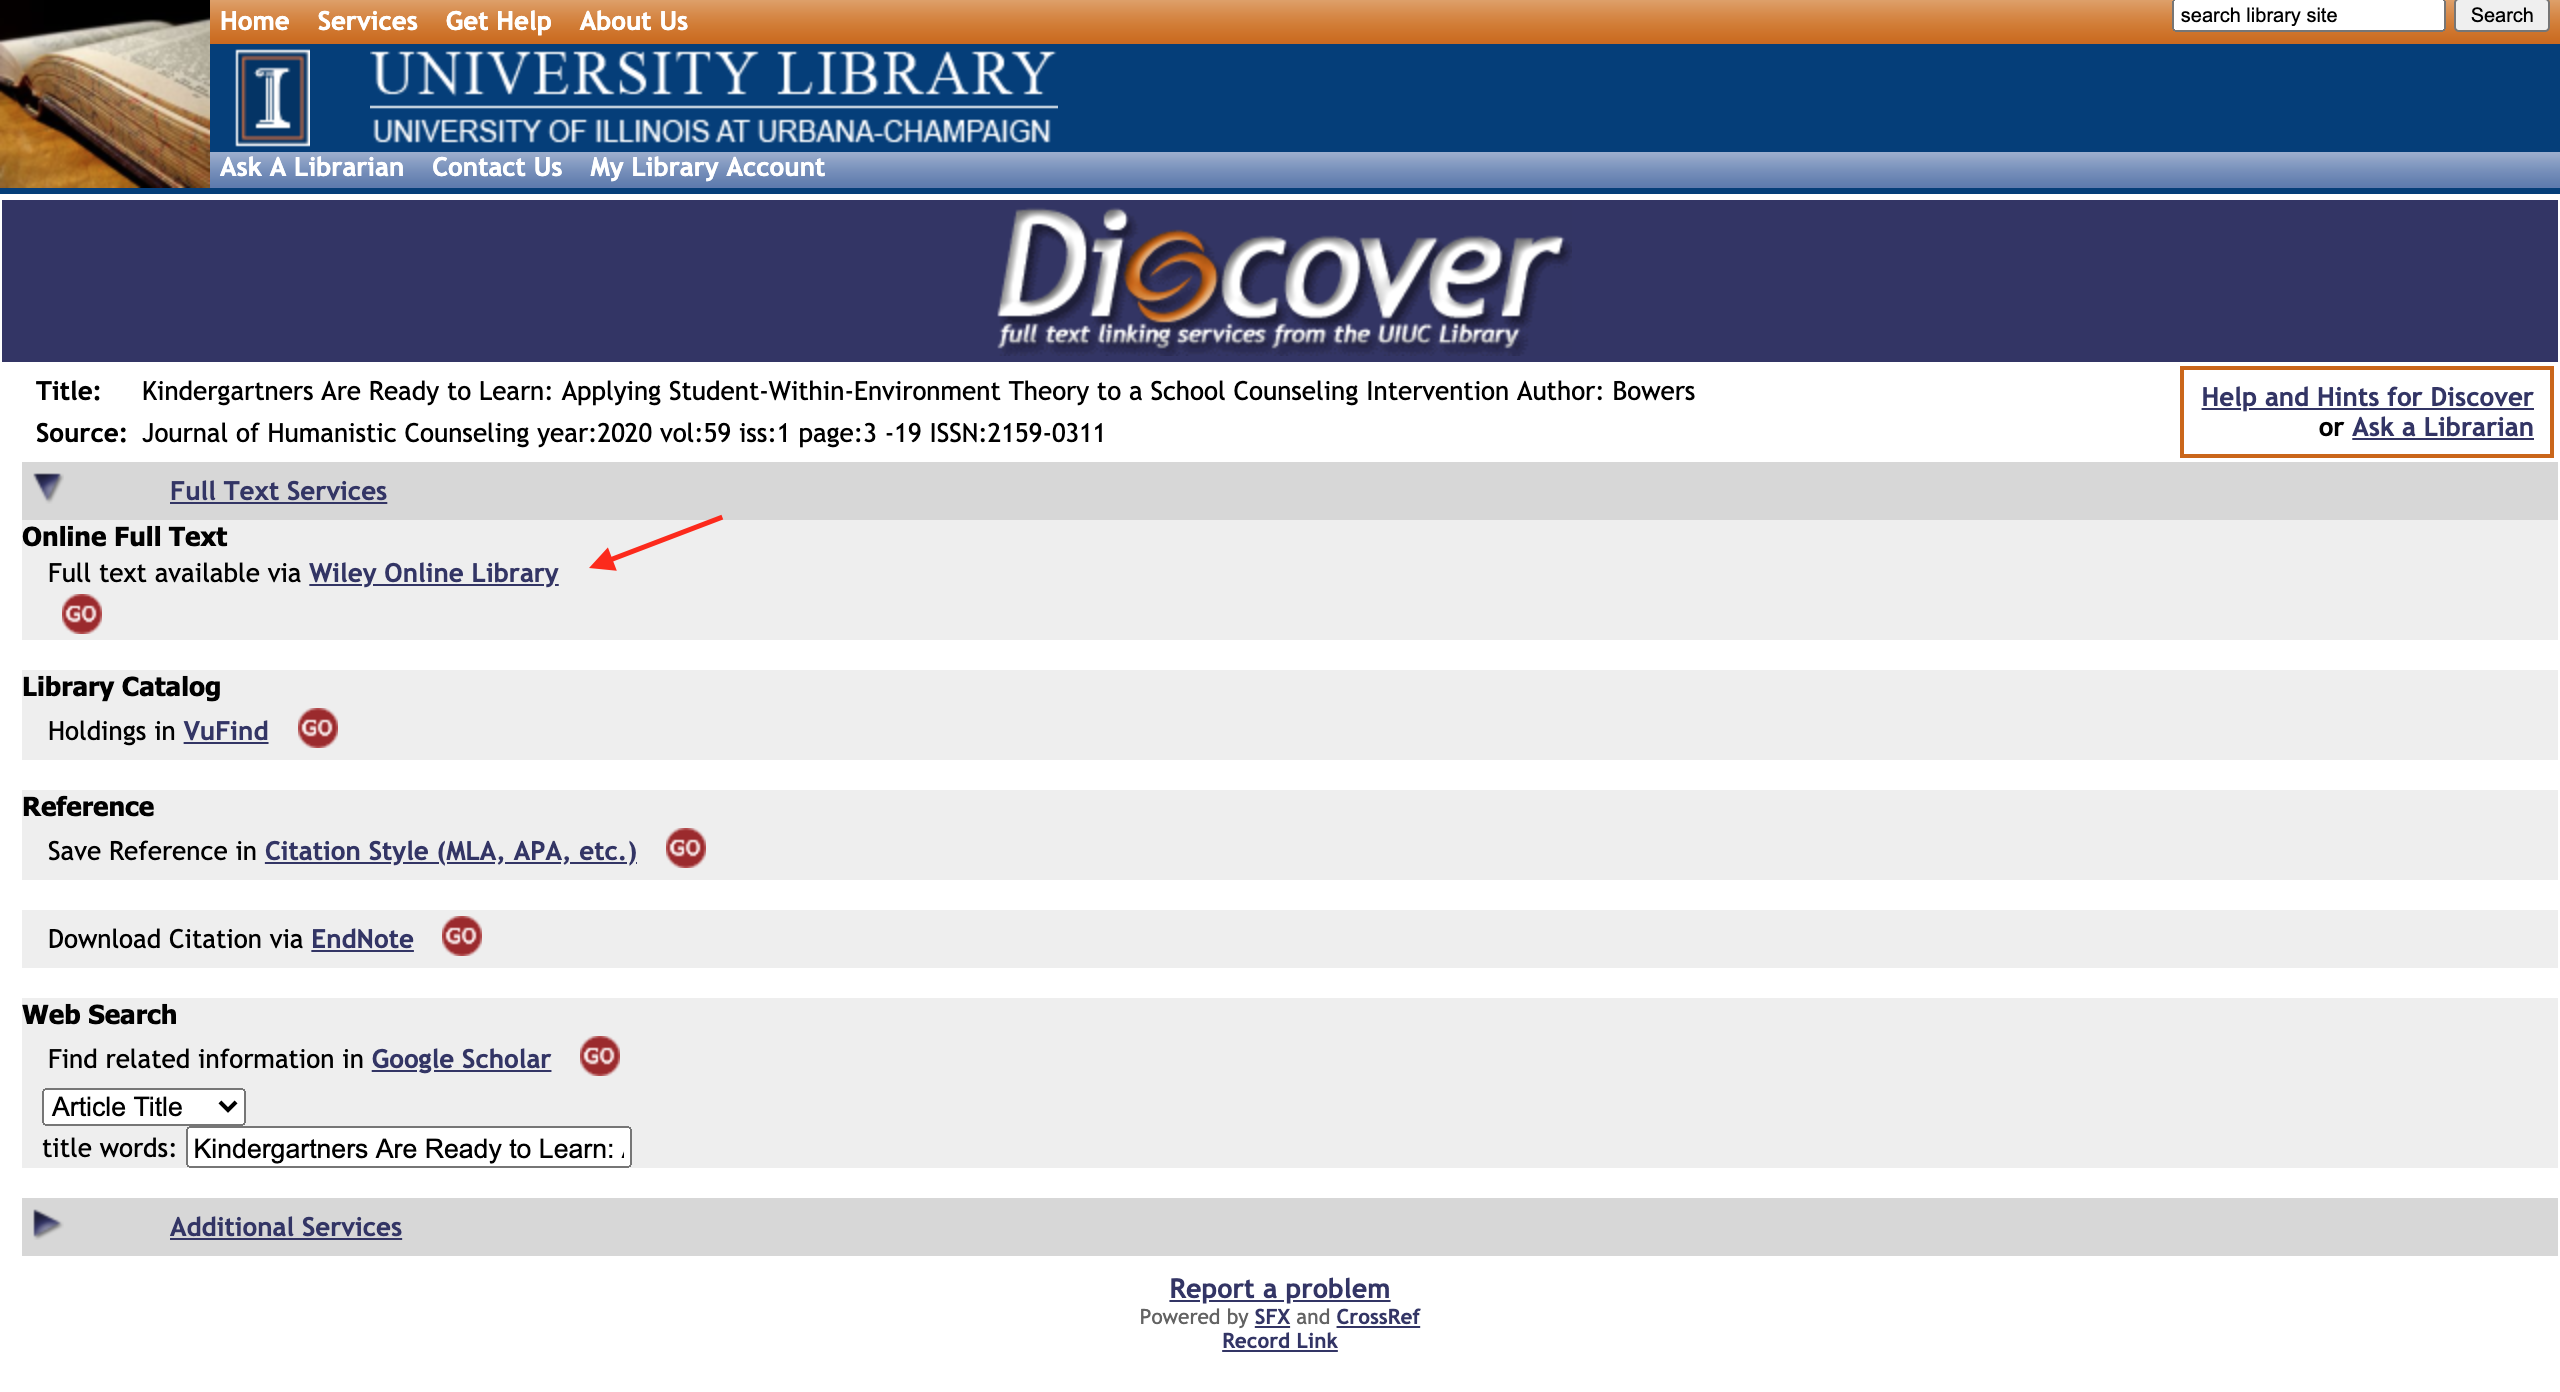 The image is the discover full text page an the online full text result is being pointed to by a red arrow